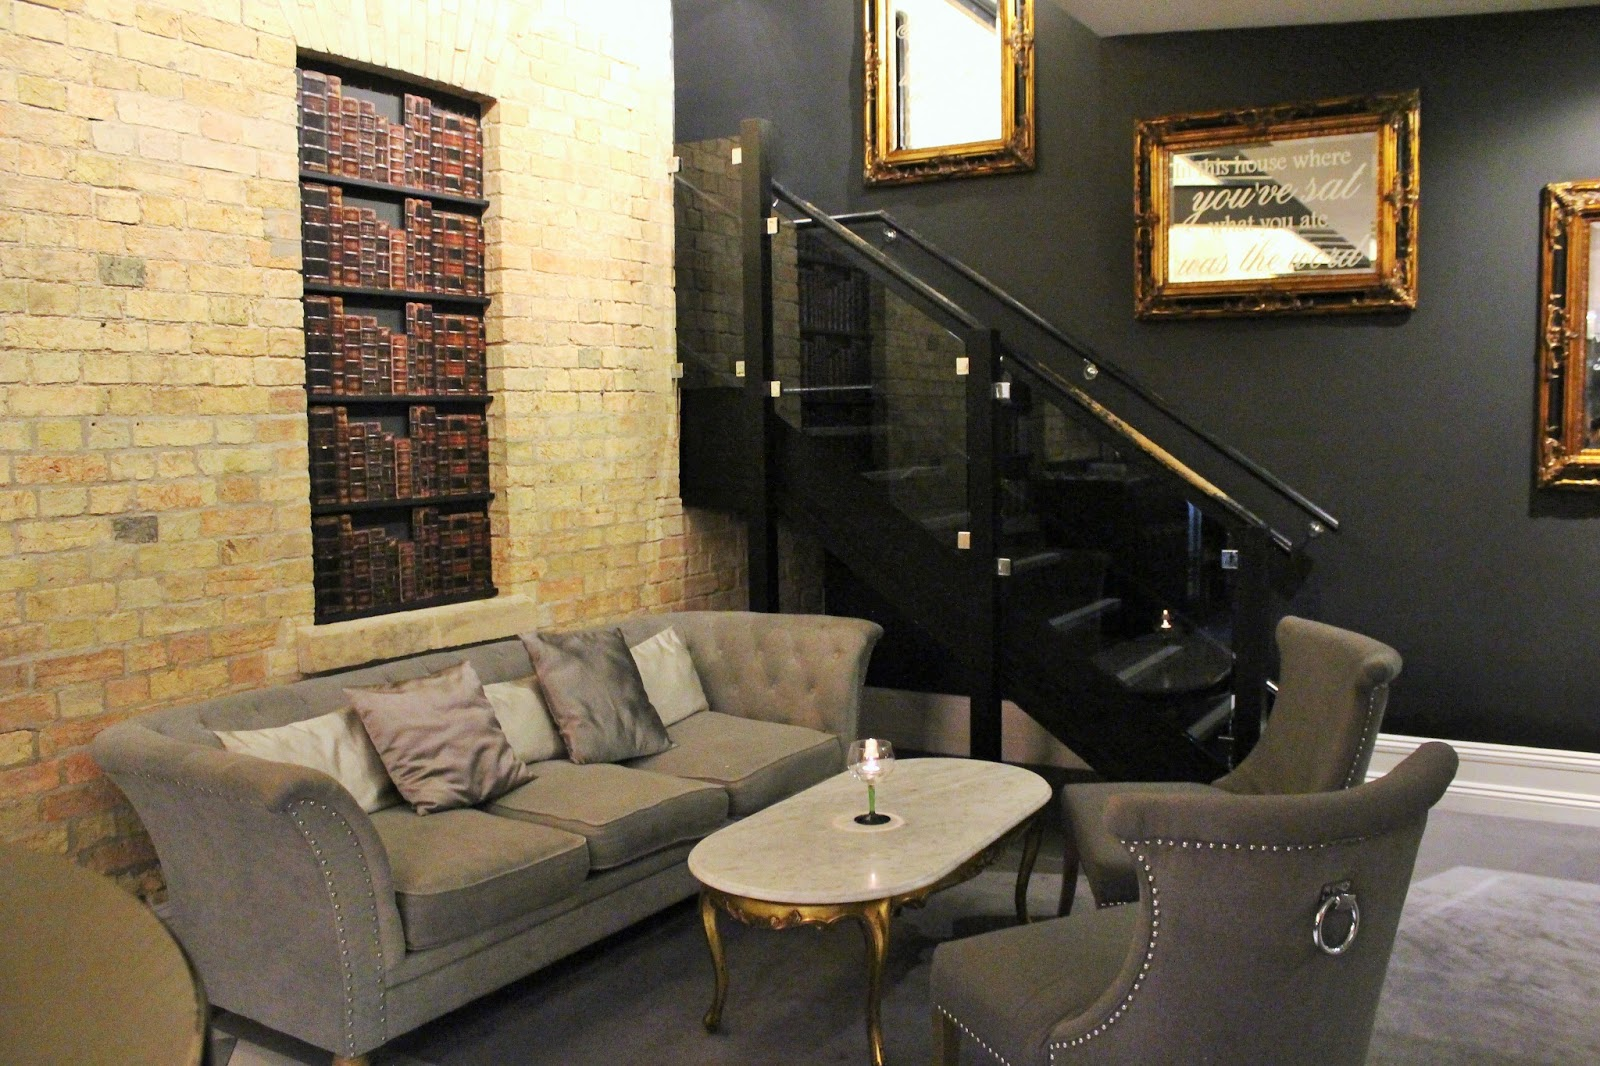 Poets House Hotel, Ely, Cambridgeshire - The Study